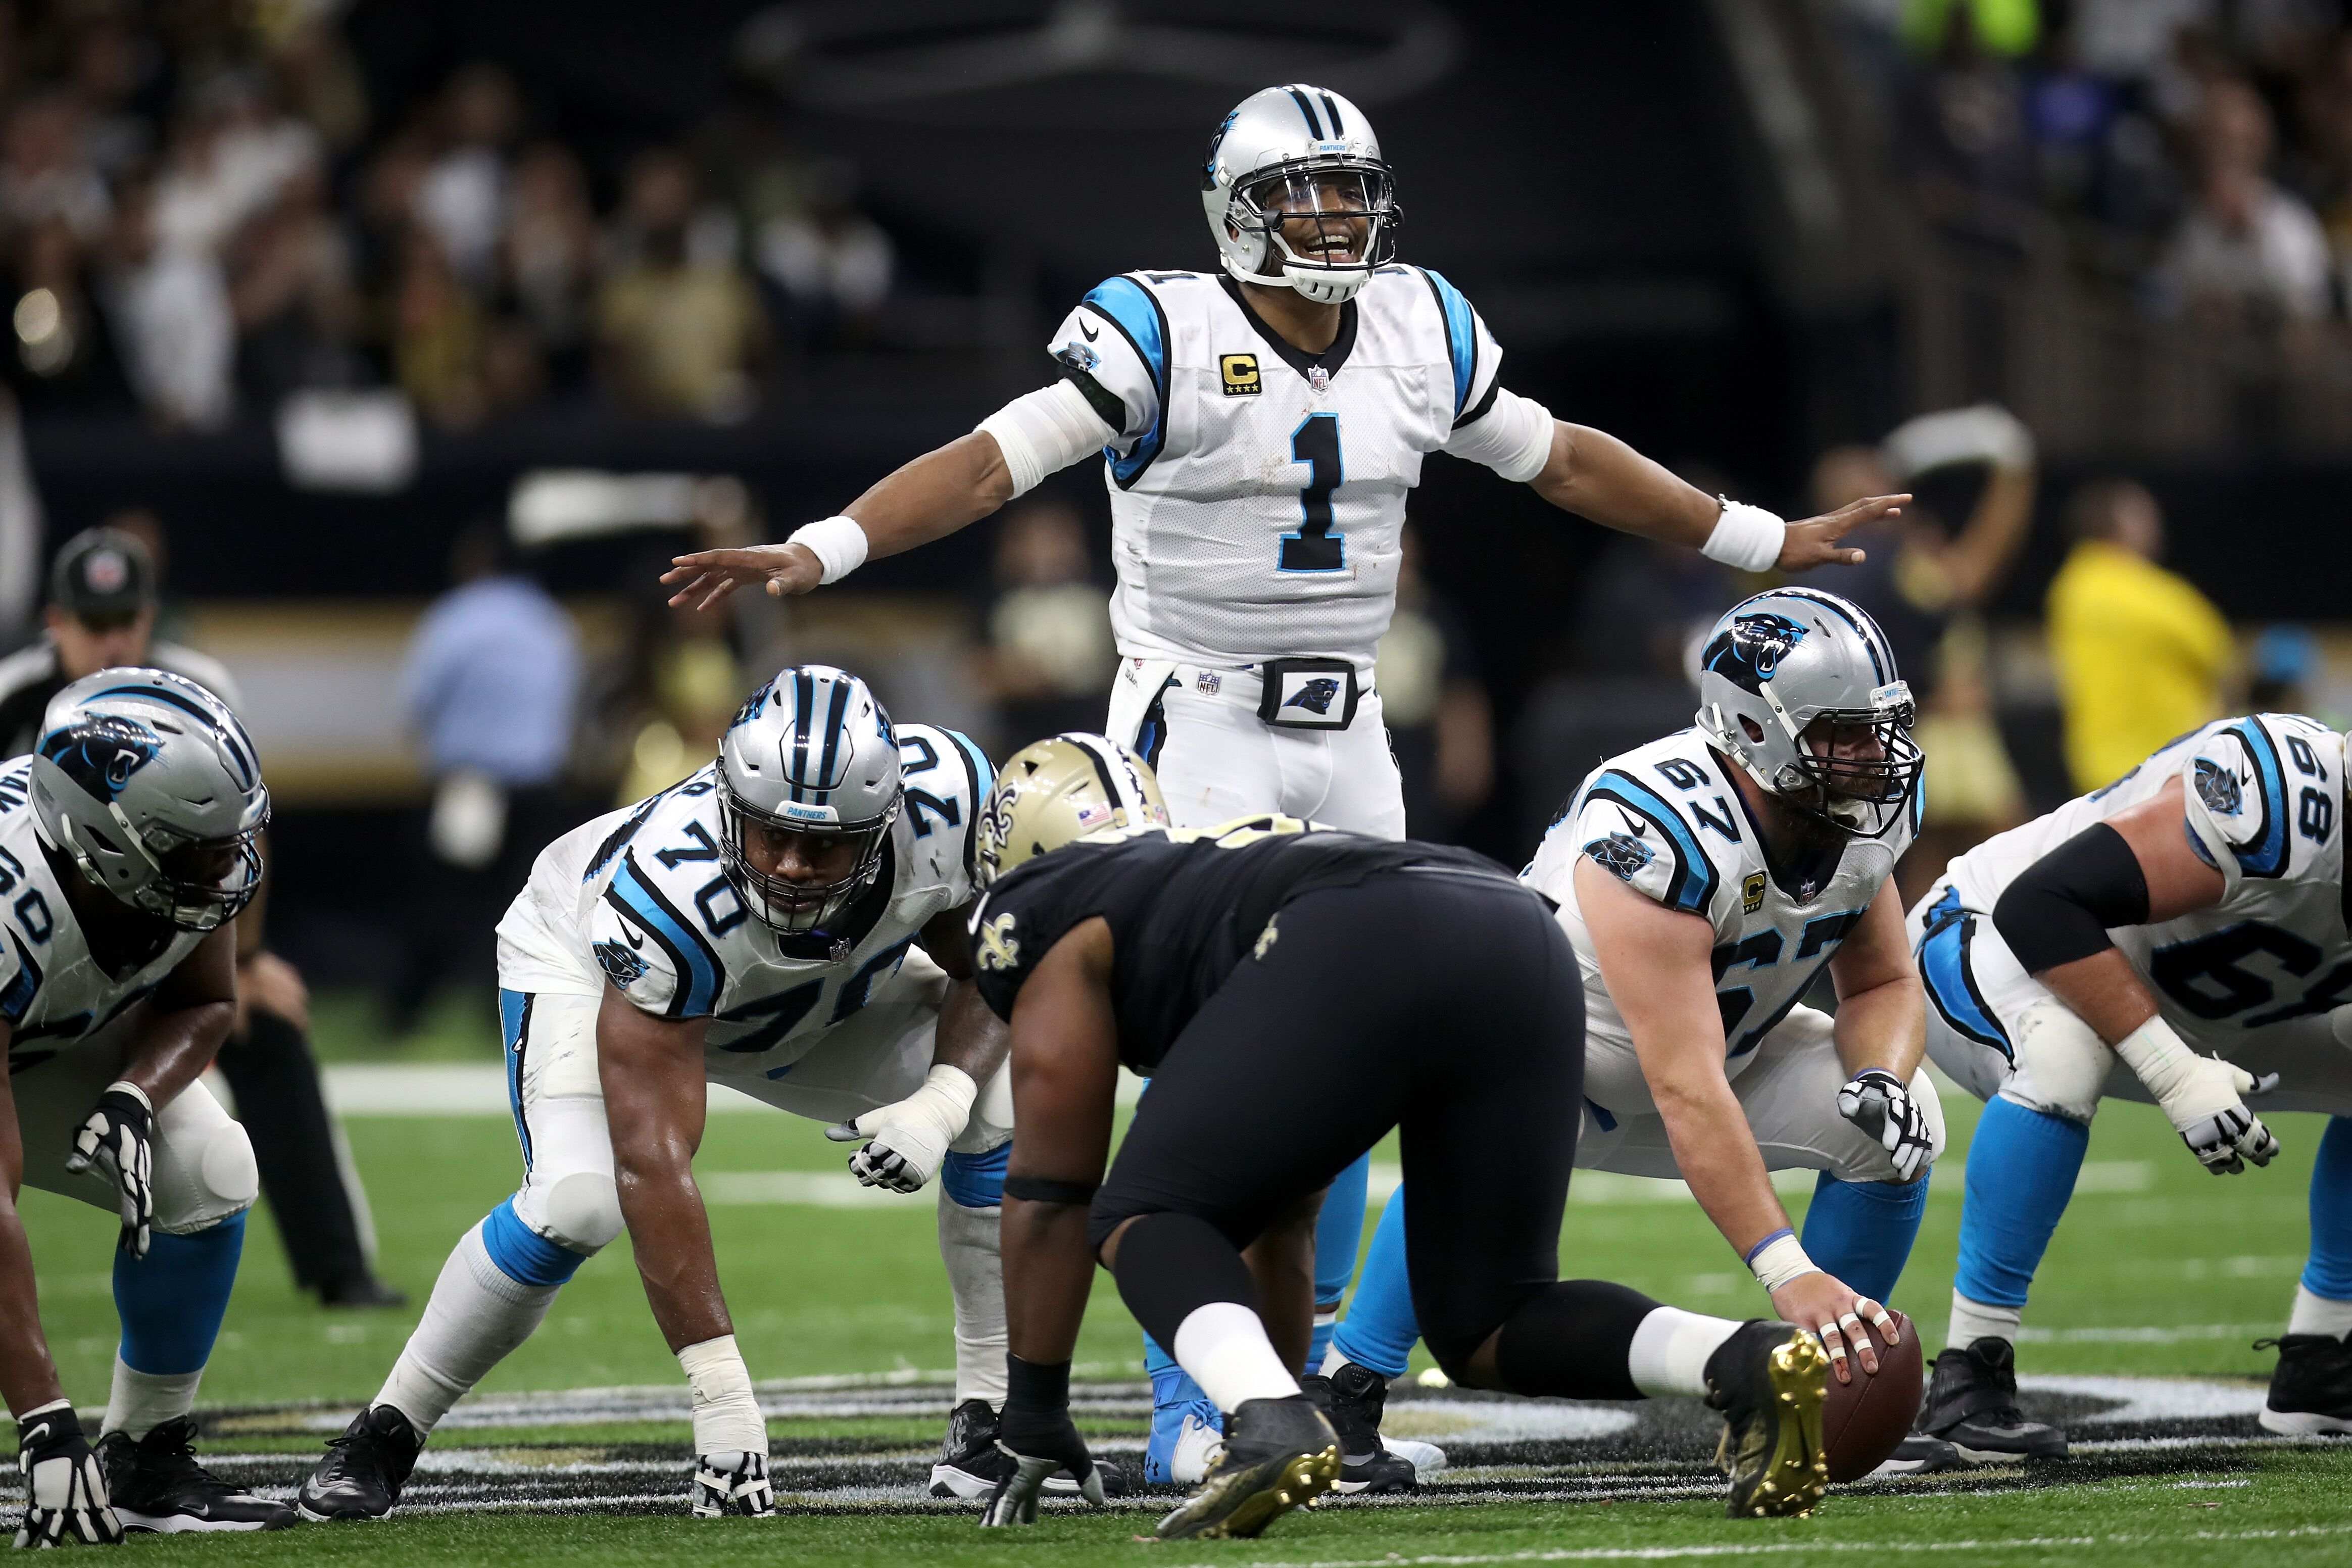 Carolina Panthers offseason roster priorities ranked - UPDATED